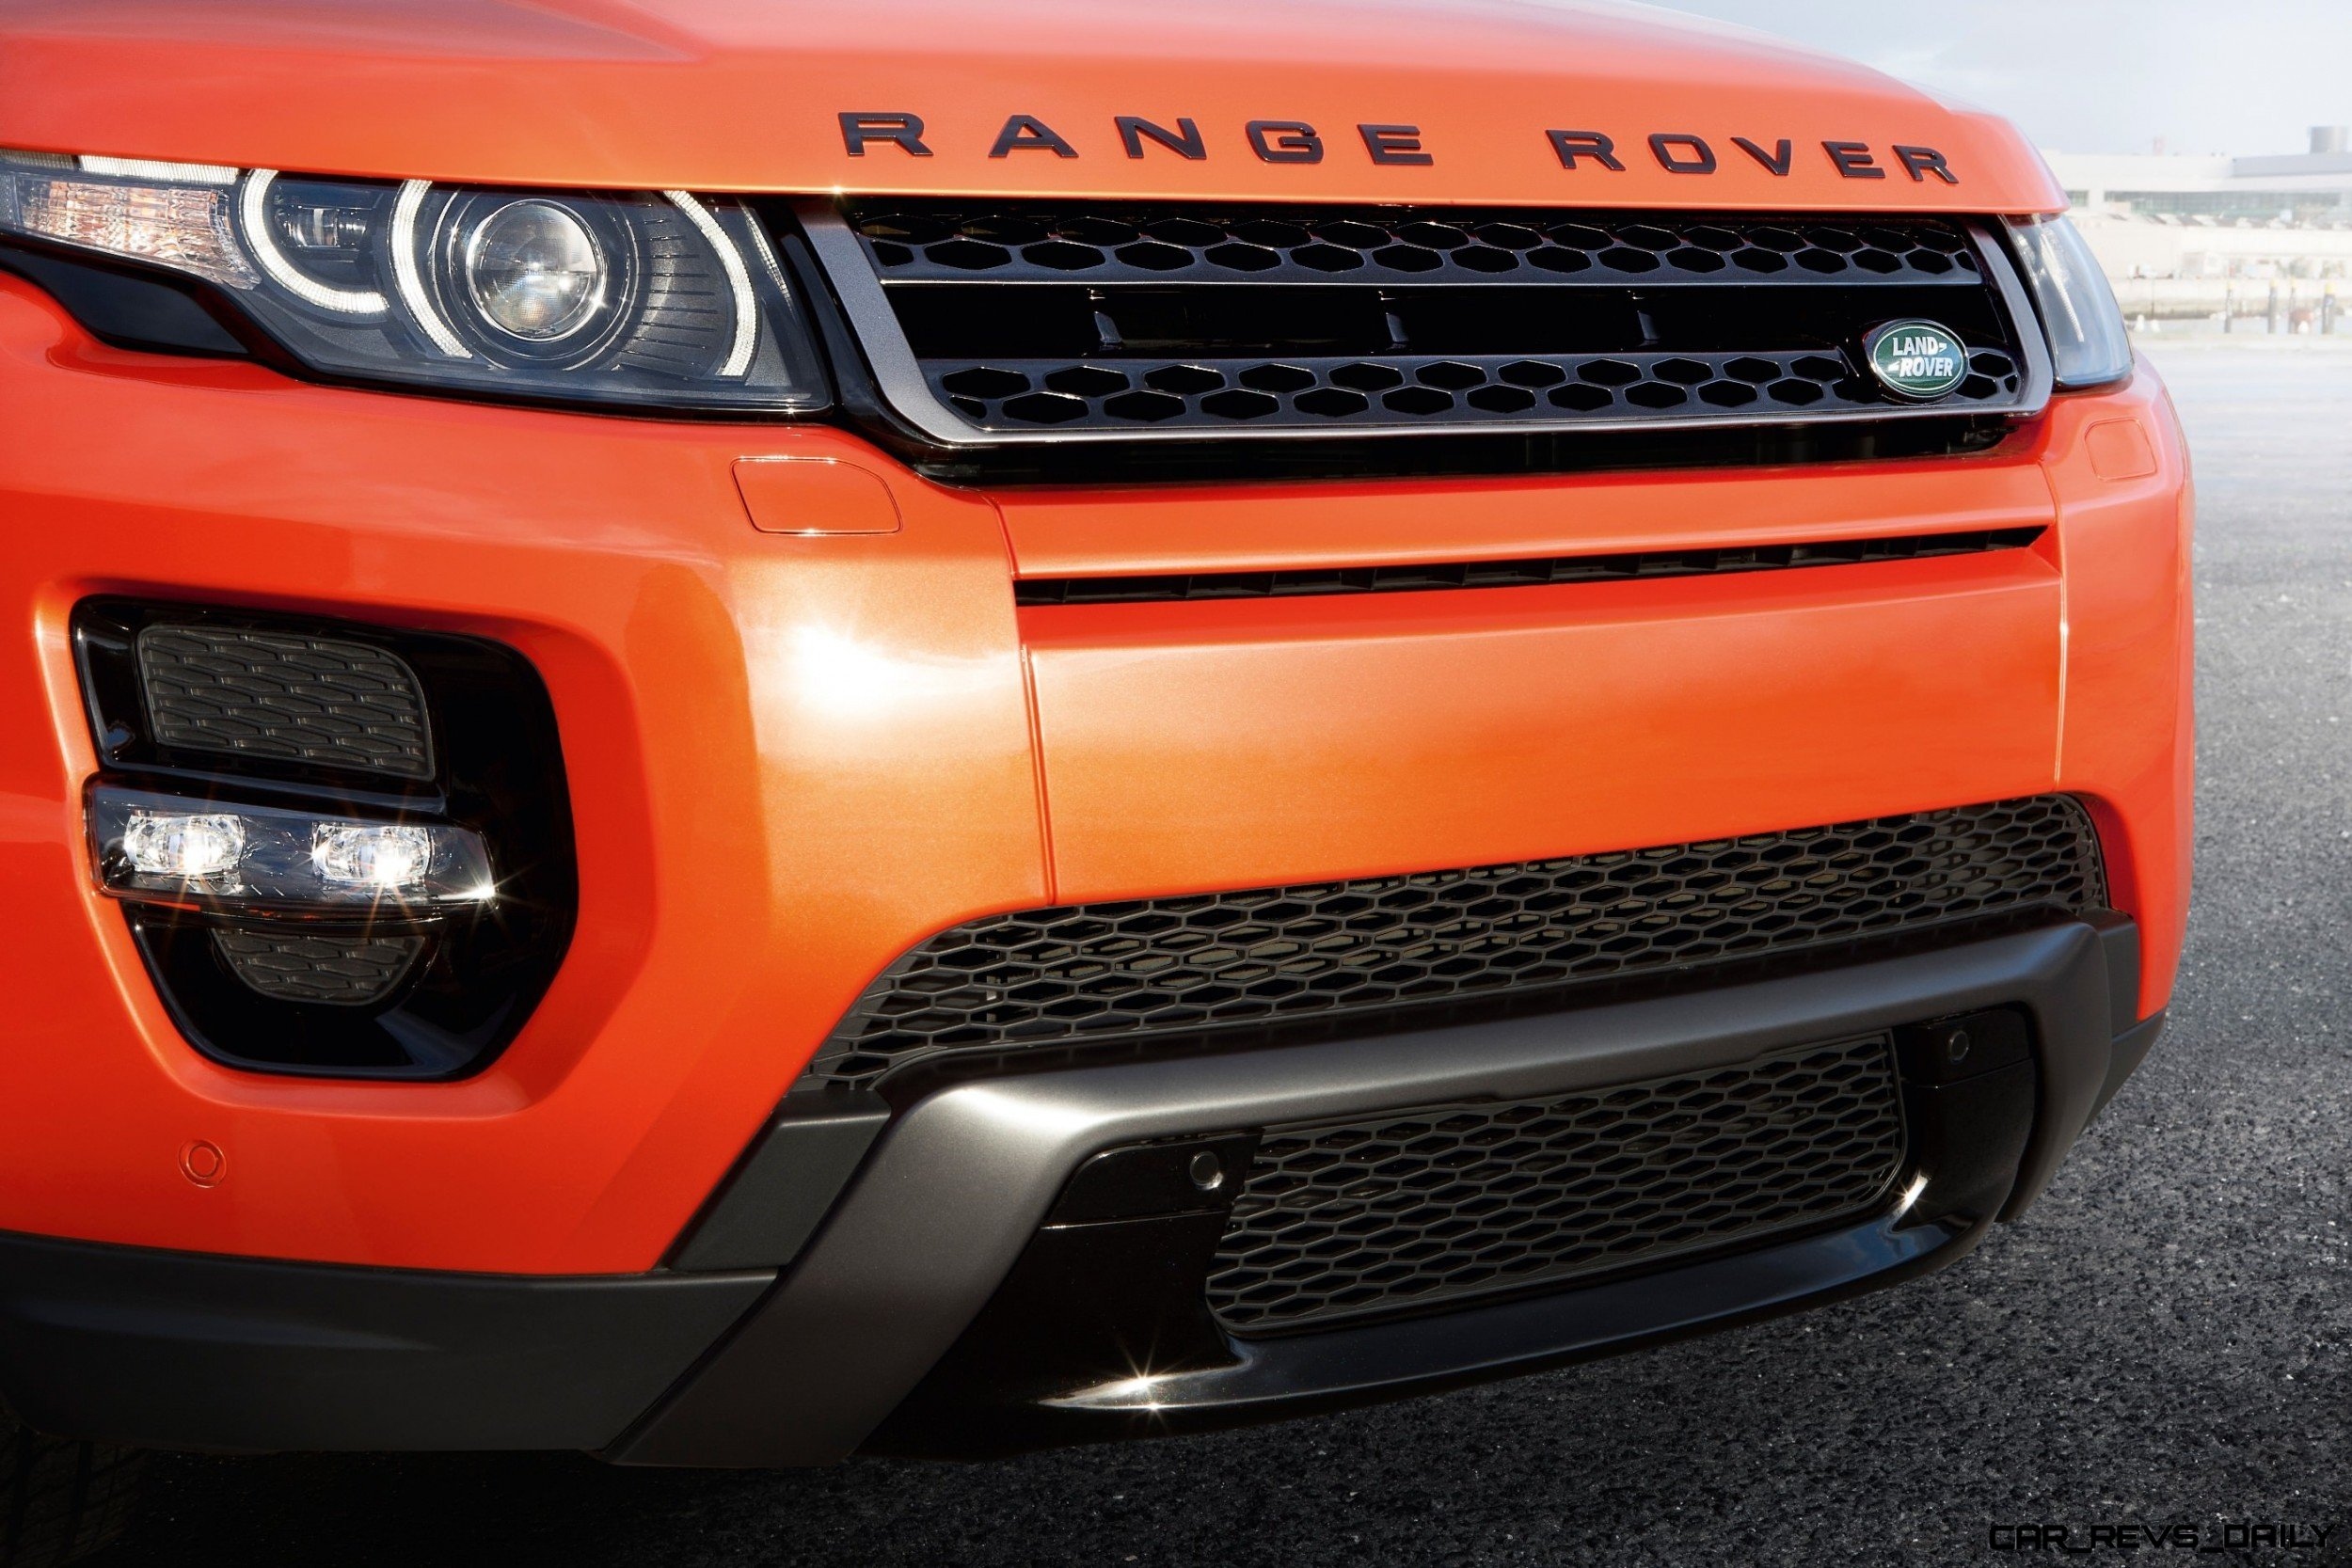 2015 Range Rover Evoque Gains 9-Speed Auto, Refreshed Info Tech and Boosted Engine HP 2015 Range Rover Evoque Gains 9-Speed Auto, Refreshed Info Tech and Boosted Engine HP 2015 Range Rover Evoque Gains 9-Speed Auto, Refreshed Info Tech and Boosted Engine HP 2015 Range Rover Evoque Gains 9-Speed Auto, Refreshed Info Tech and Boosted Engine HP 2015 Range Rover Evoque Gains 9-Speed Auto, Refreshed Info Tech and Boosted Engine HP 2015 Range Rover Evoque Gains 9-Speed Auto, Refreshed Info Tech and Boosted Engine HP 2015 Range Rover Evoque Gains 9-Speed Auto, Refreshed Info Tech and Boosted Engine HP 2015 Range Rover Evoque Gains 9-Speed Auto, Refreshed Info Tech and Boosted Engine HP 2015 Range Rover Evoque Gains 9-Speed Auto, Refreshed Info Tech and Boosted Engine HP 2015 Range Rover Evoque Gains 9-Speed Auto, Refreshed Info Tech and Boosted Engine HP 2015 Range Rover Evoque Gains 9-Speed Auto, Refreshed Info Tech and Boosted Engine HP 2015 Range Rover Evoque Gains 9-Speed Auto, Refreshed Info Tech and Boosted Engine HP 2015 Range Rover Evoque Gains 9-Speed Auto, Refreshed Info Tech and Boosted Engine HP 2015 Range Rover Evoque Gains 9-Speed Auto, Refreshed Info Tech and Boosted Engine HP 2015 Range Rover Evoque Gains 9-Speed Auto, Refreshed Info Tech and Boosted Engine HP 2015 Range Rover Evoque Gains 9-Speed Auto, Refreshed Info Tech and Boosted Engine HP 2015 Range Rover Evoque Gains 9-Speed Auto, Refreshed Info Tech and Boosted Engine HP 2015 Range Rover Evoque Gains 9-Speed Auto, Refreshed Info Tech and Boosted Engine HP 2015 Range Rover Evoque Gains 9-Speed Auto, Refreshed Info Tech and Boosted Engine HP 2015 Range Rover Evoque Gains 9-Speed Auto, Refreshed Info Tech and Boosted Engine HP 2015 Range Rover Evoque Gains 9-Speed Auto, Refreshed Info Tech and Boosted Engine HP 2015 Range Rover Evoque Gains 9-Speed Auto, Refreshed Info Tech and Boosted Engine HP 2015 Range Rover Evoque Gains 9-Speed Auto, Refreshed Info Tech and Boosted Engine HP 2015 Range Rover Evoque Gains 9-Speed Auto, Refreshed Info Tech and Boosted Engine HP 2015 Range Rover Evoque Gains 9-Speed Auto, Refreshed Info Tech and Boosted Engine HP 2015 Range Rover Evoque Gains 9-Speed Auto, Refreshed Info Tech and Boosted Engine HP 2015 Range Rover Evoque Gains 9-Speed Auto, Refreshed Info Tech and Boosted Engine HP 2015 Range Rover Evoque Gains 9-Speed Auto, Refreshed Info Tech and Boosted Engine HP 2015 Range Rover Evoque Gains 9-Speed Auto, Refreshed Info Tech and Boosted Engine HP 2015 Range Rover Evoque Gains 9-Speed Auto, Refreshed Info Tech and Boosted Engine HP 2015 Range Rover Evoque Gains 9-Speed Auto, Refreshed Info Tech and Boosted Engine HP 2015 Range Rover Evoque Gains 9-Speed Auto, Refreshed Info Tech and Boosted Engine HP 2015 Range Rover Evoque Gains 9-Speed Auto, Refreshed Info Tech and Boosted Engine HP 2015 Range Rover Evoque Gains 9-Speed Auto, Refreshed Info Tech and Boosted Engine HP 2015 Range Rover Evoque Gains 9-Speed Auto, Refreshed Info Tech and Boosted Engine HP 2015 Range Rover Evoque Gains 9-Speed Auto, Refreshed Info Tech and Boosted Engine HP 2015 Range Rover Evoque Gains 9-Speed Auto, Refreshed Info Tech and Boosted Engine HP 2015 Range Rover Evoque Gains 9-Speed Auto, Refreshed Info Tech and Boosted Engine HP 2015 Range Rover Evoque Gains 9-Speed Auto, Refreshed Info Tech and Boosted Engine HP 2015 Range Rover Evoque Gains 9-Speed Auto, Refreshed Info Tech and Boosted Engine HP 2015 Range Rover Evoque Gains 9-Speed Auto, Refreshed Info Tech and Boosted Engine HP